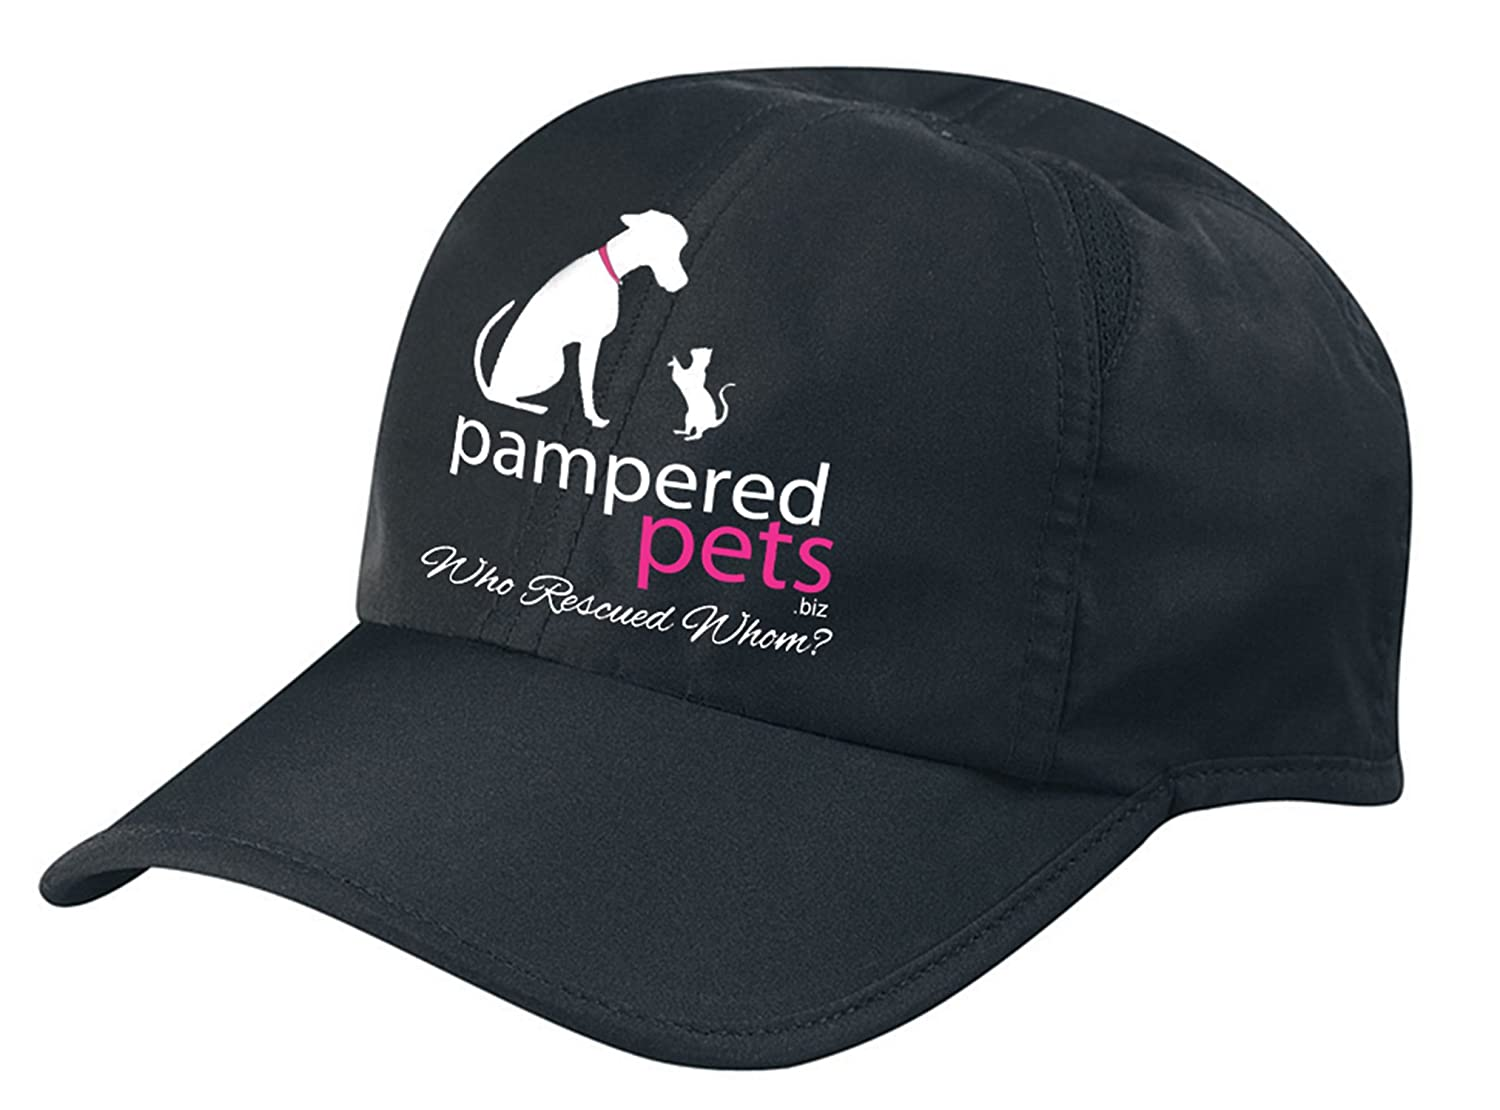 Pampered Pets 709112724490 Polyester Embroidered Dry Cap, Black